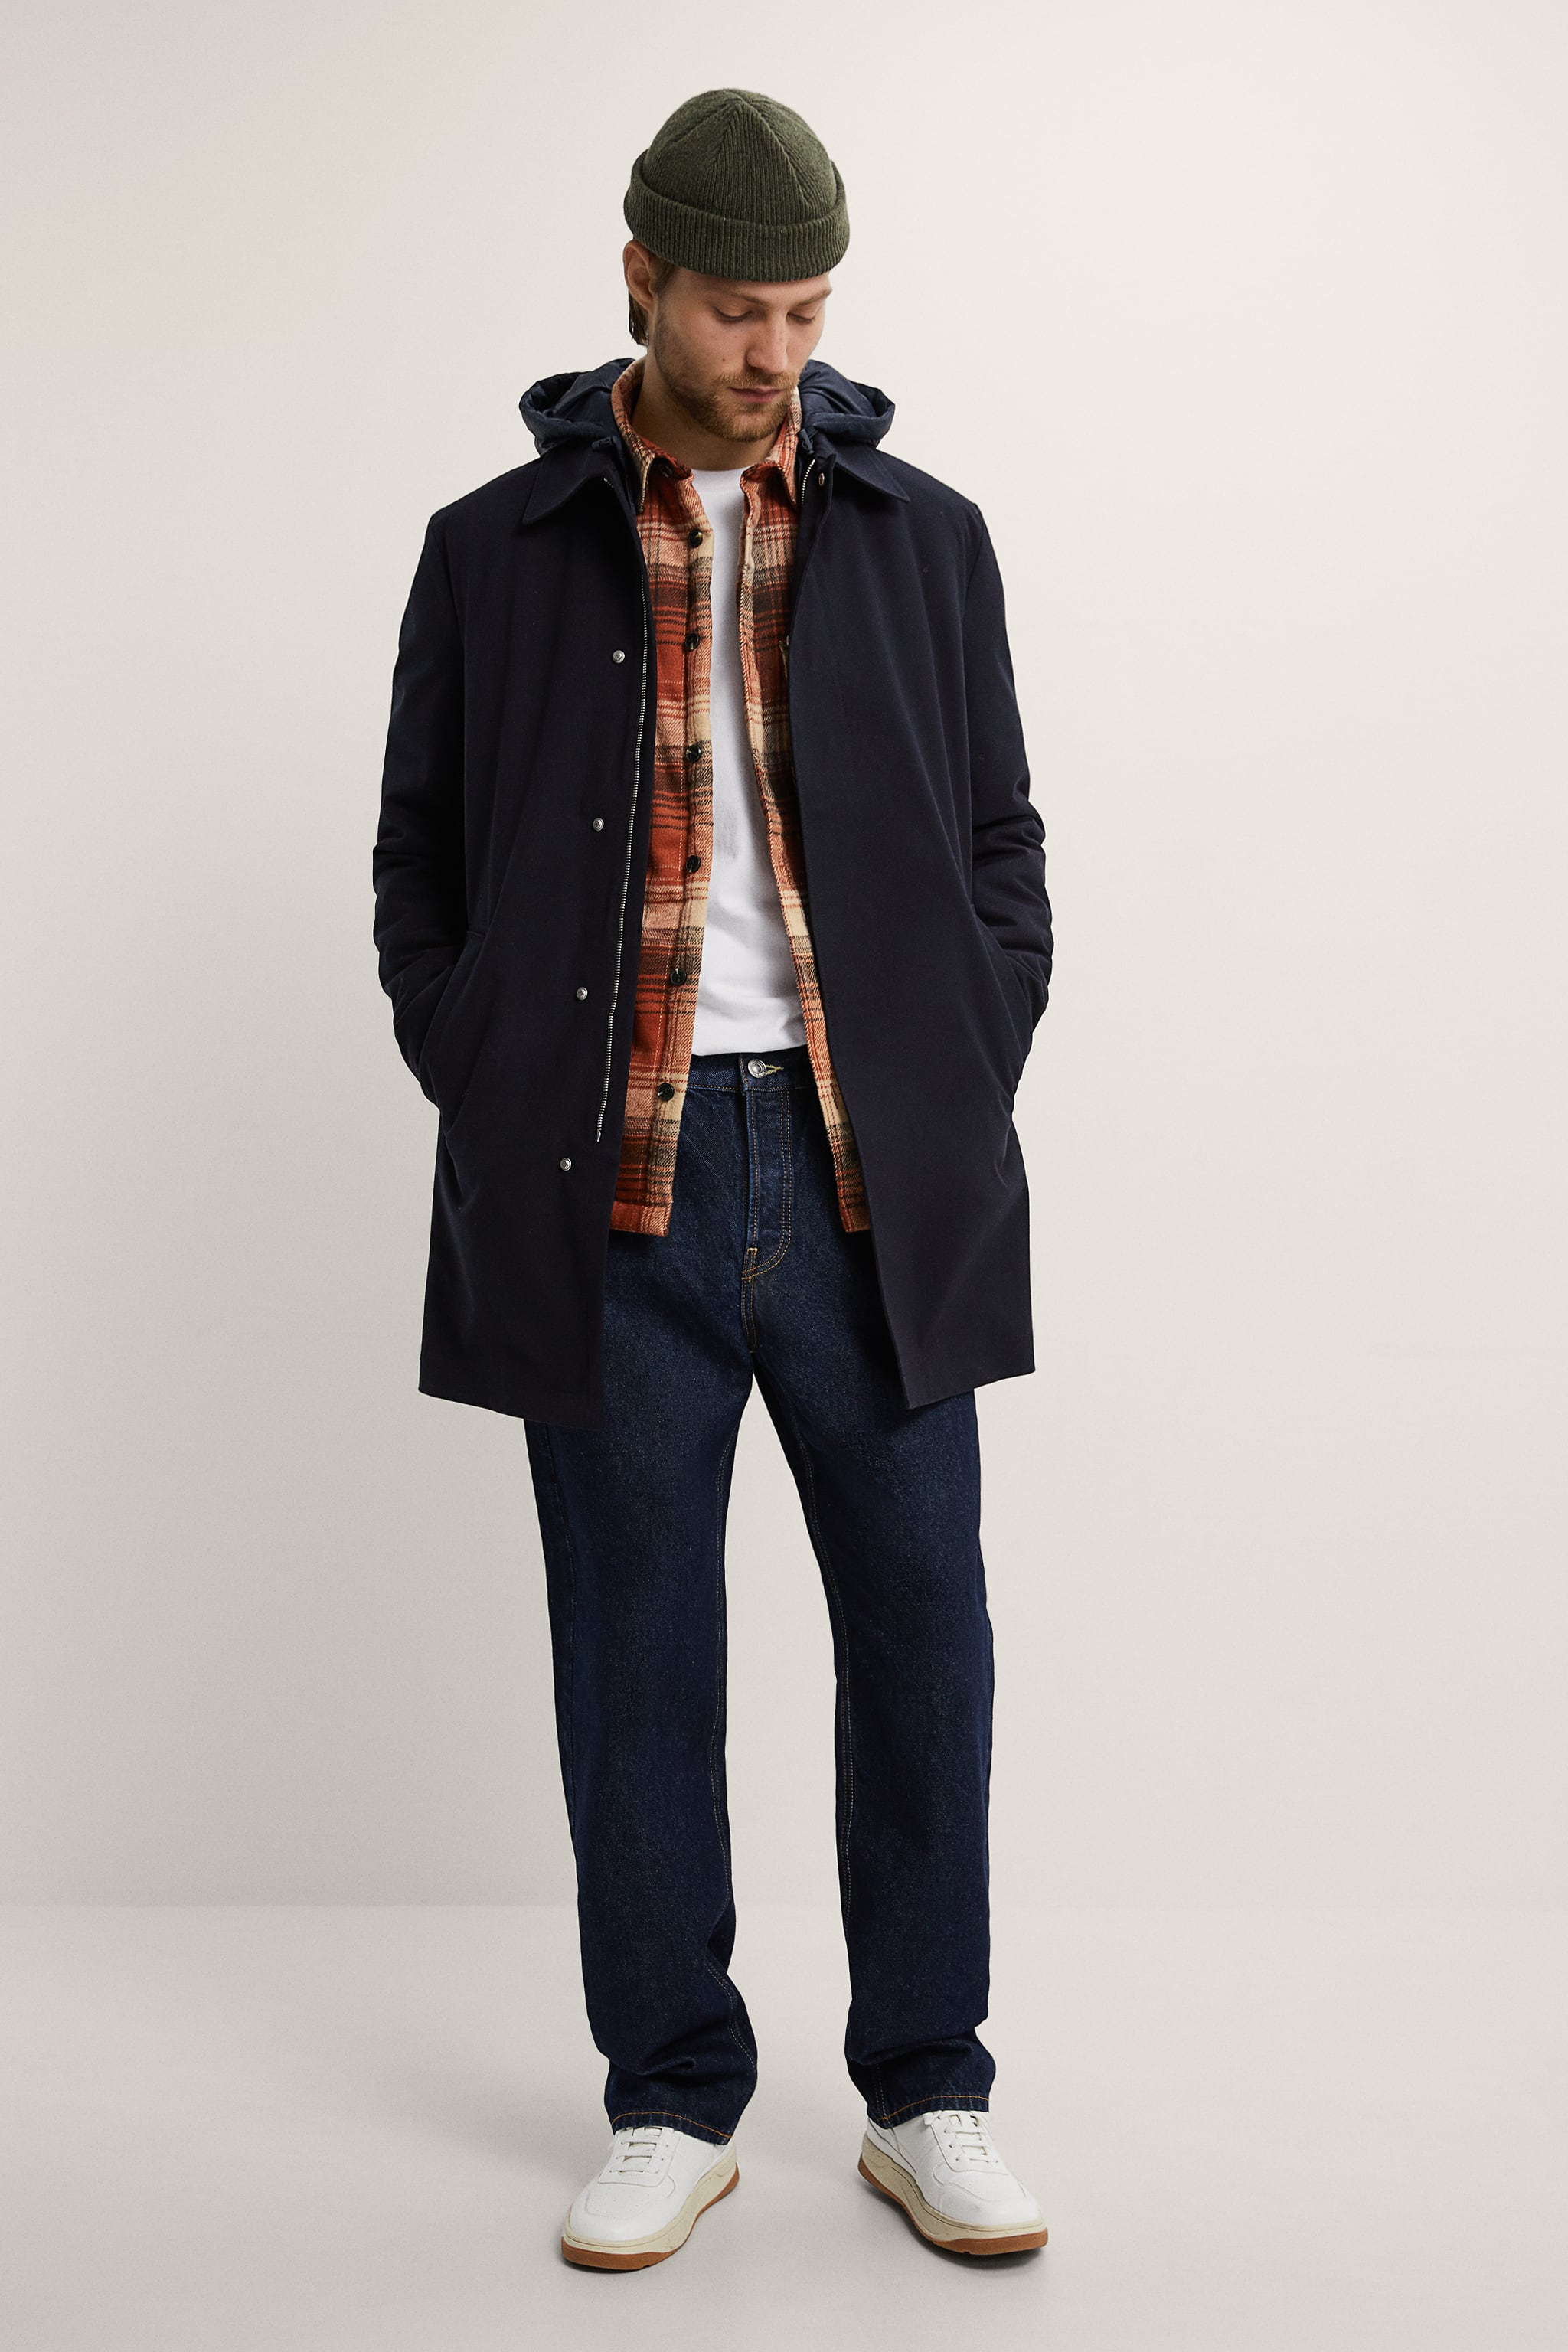 자라 Zara COMBINATION PARKA VEST,Navy blue